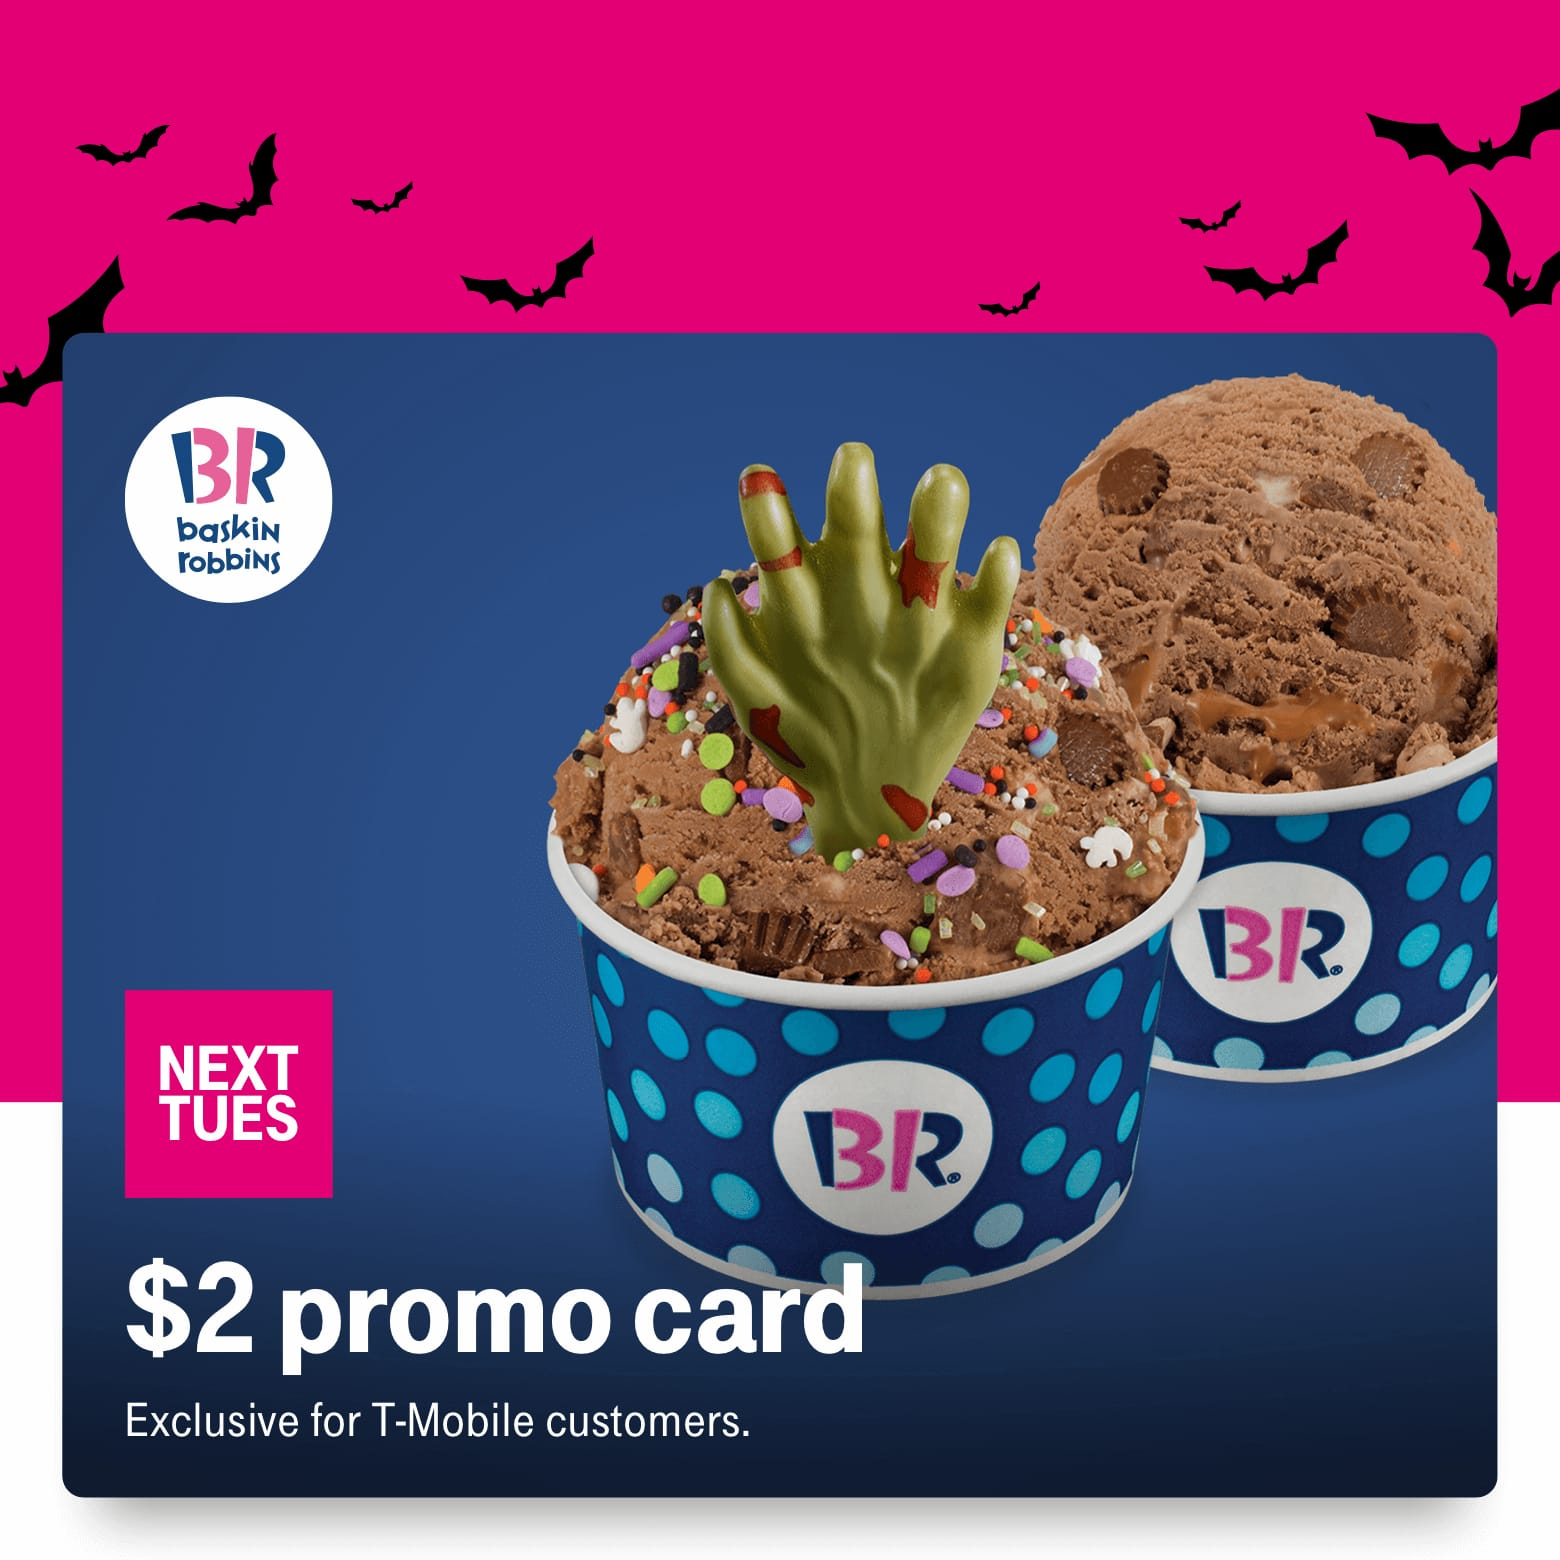 T-Mobile Customers 10/15: $2 BR31 promo card, 50% off Hot Topic, $15 off MLB shop